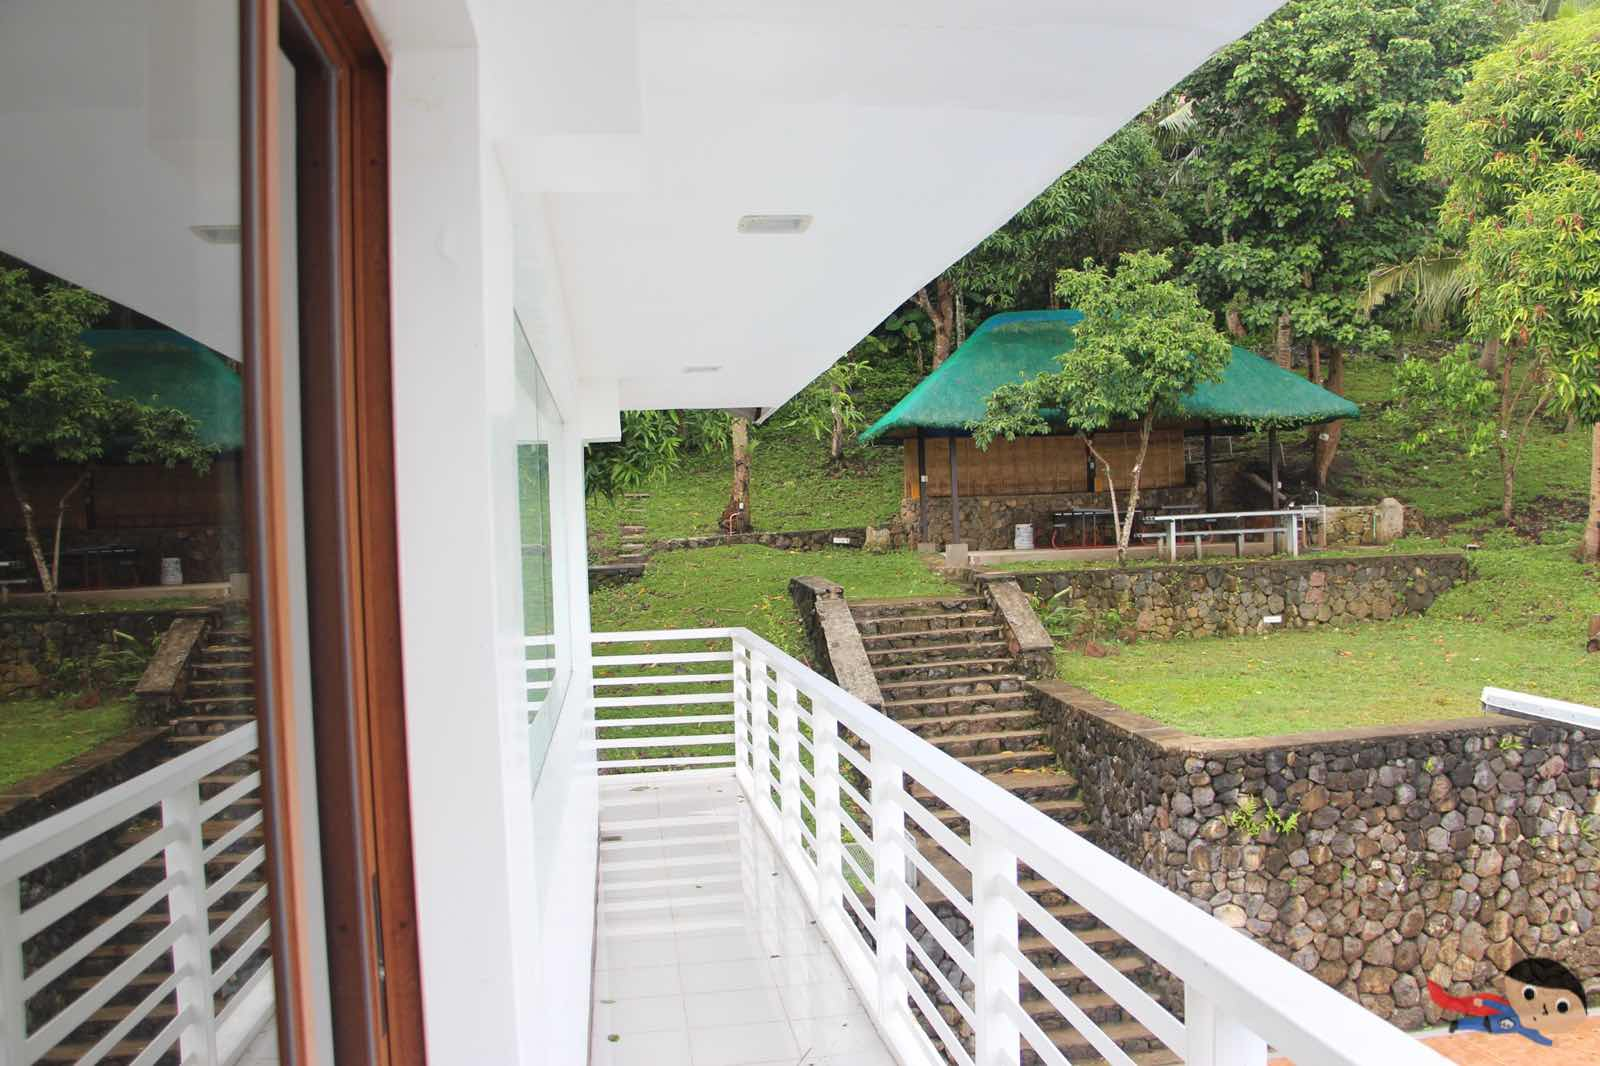 Balcony of Jamaica Peak Resort in Laguna